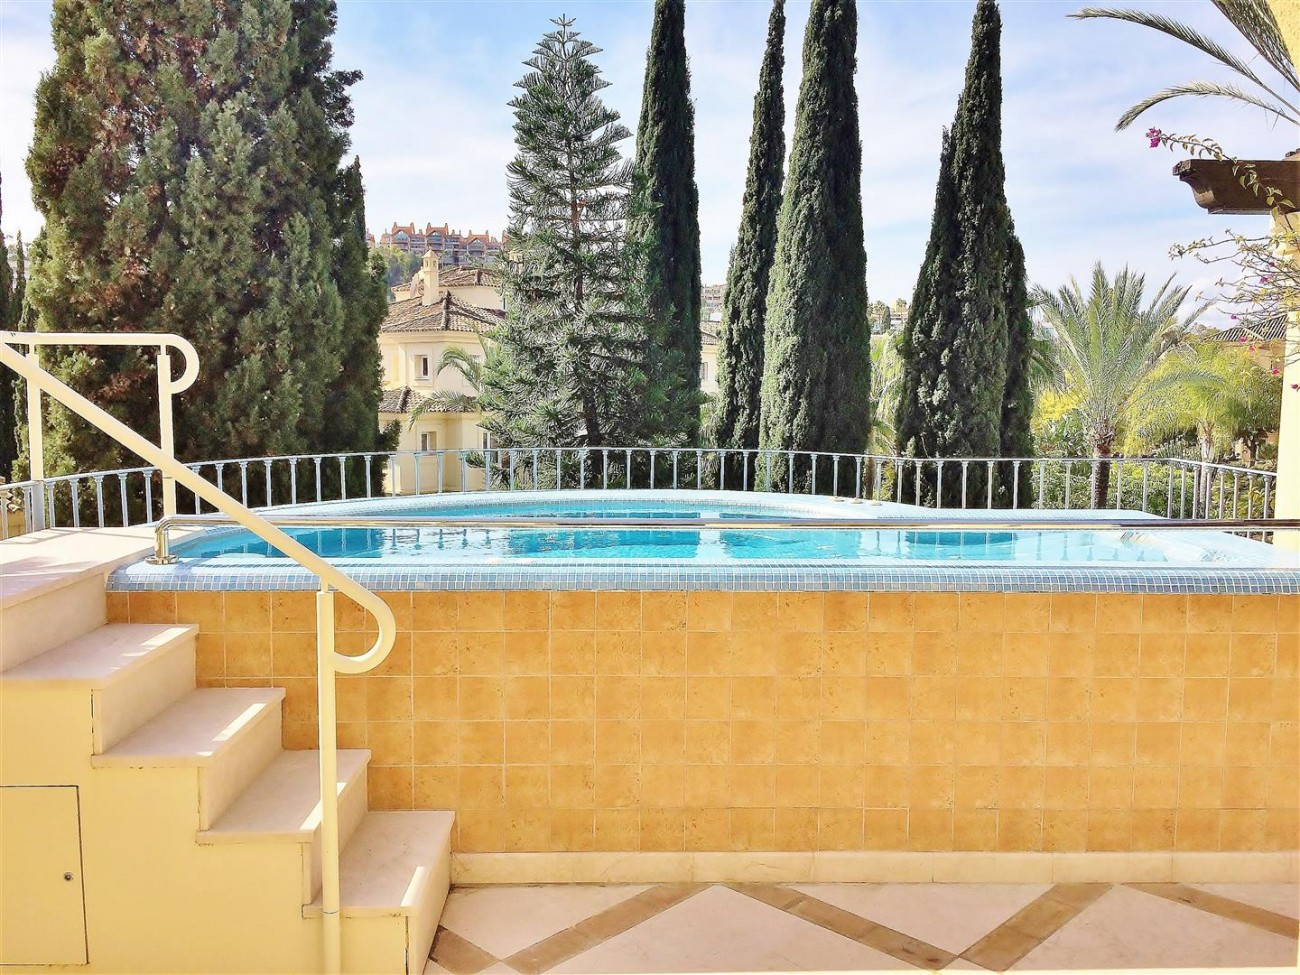 Penthouse for sale Las Alamandas Nueva Andalucia Marbella Spain (15) (Large)